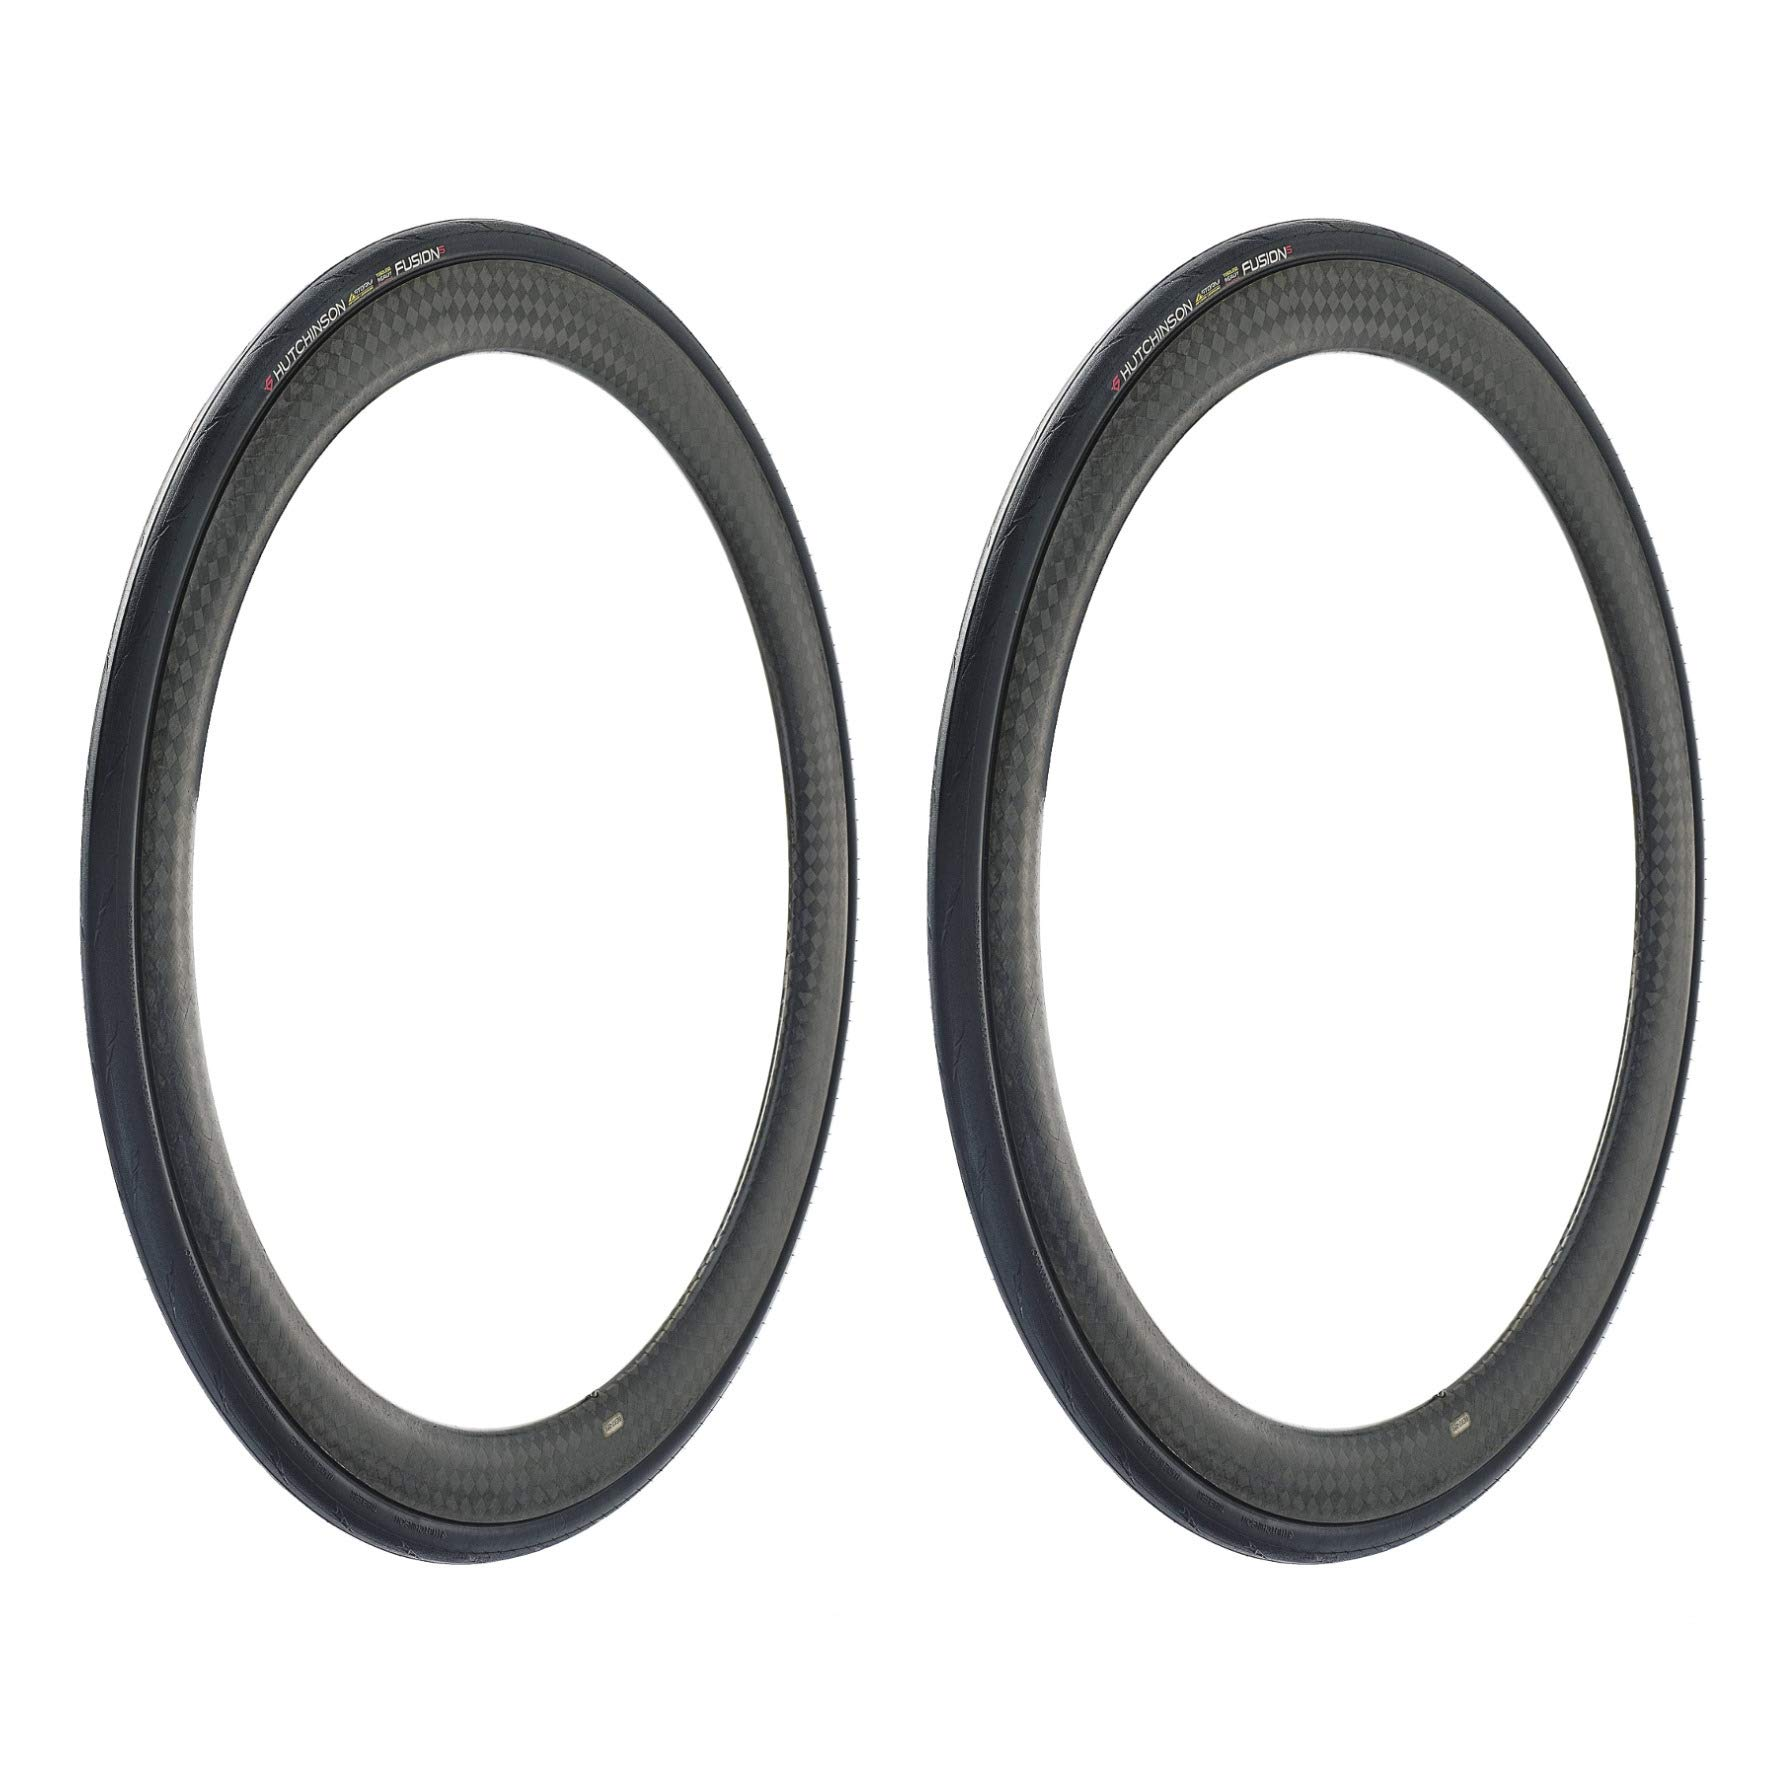 Hutchinson Bike Tires Fusion 5 All-Season Tubeless Ready Bicycle Tires, 2-Pack, 700x25, with ElevenStorm Tread